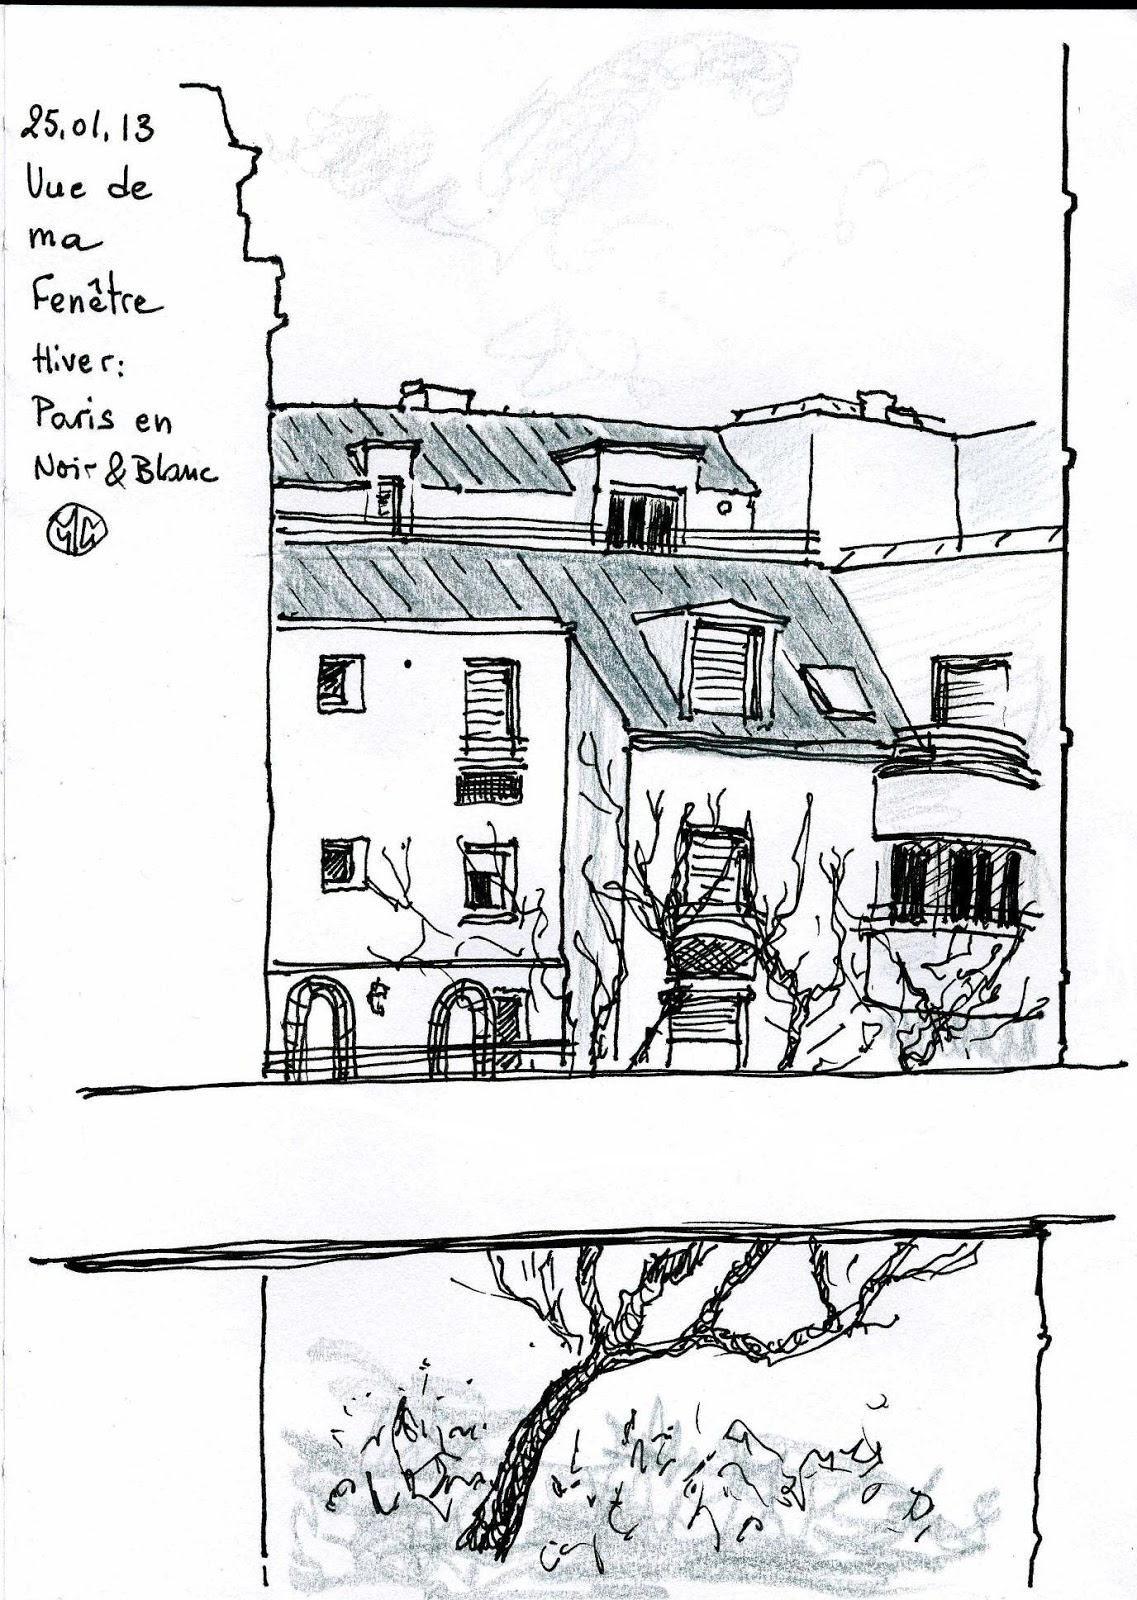 Urban sketchers paris vue de ma fen tre for Vue de ma fenetre